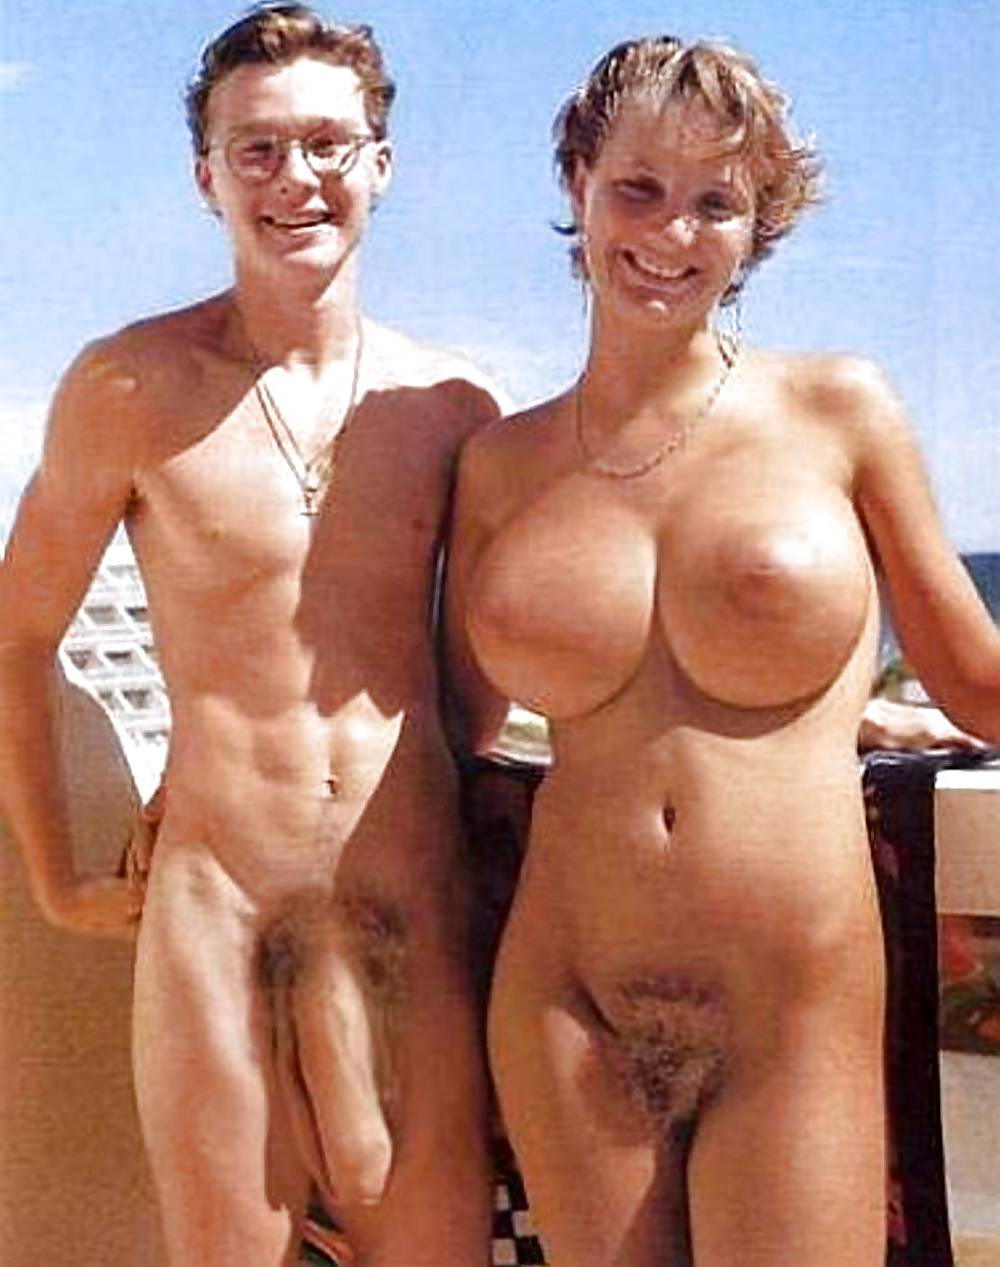 Couple amateur galerie photo